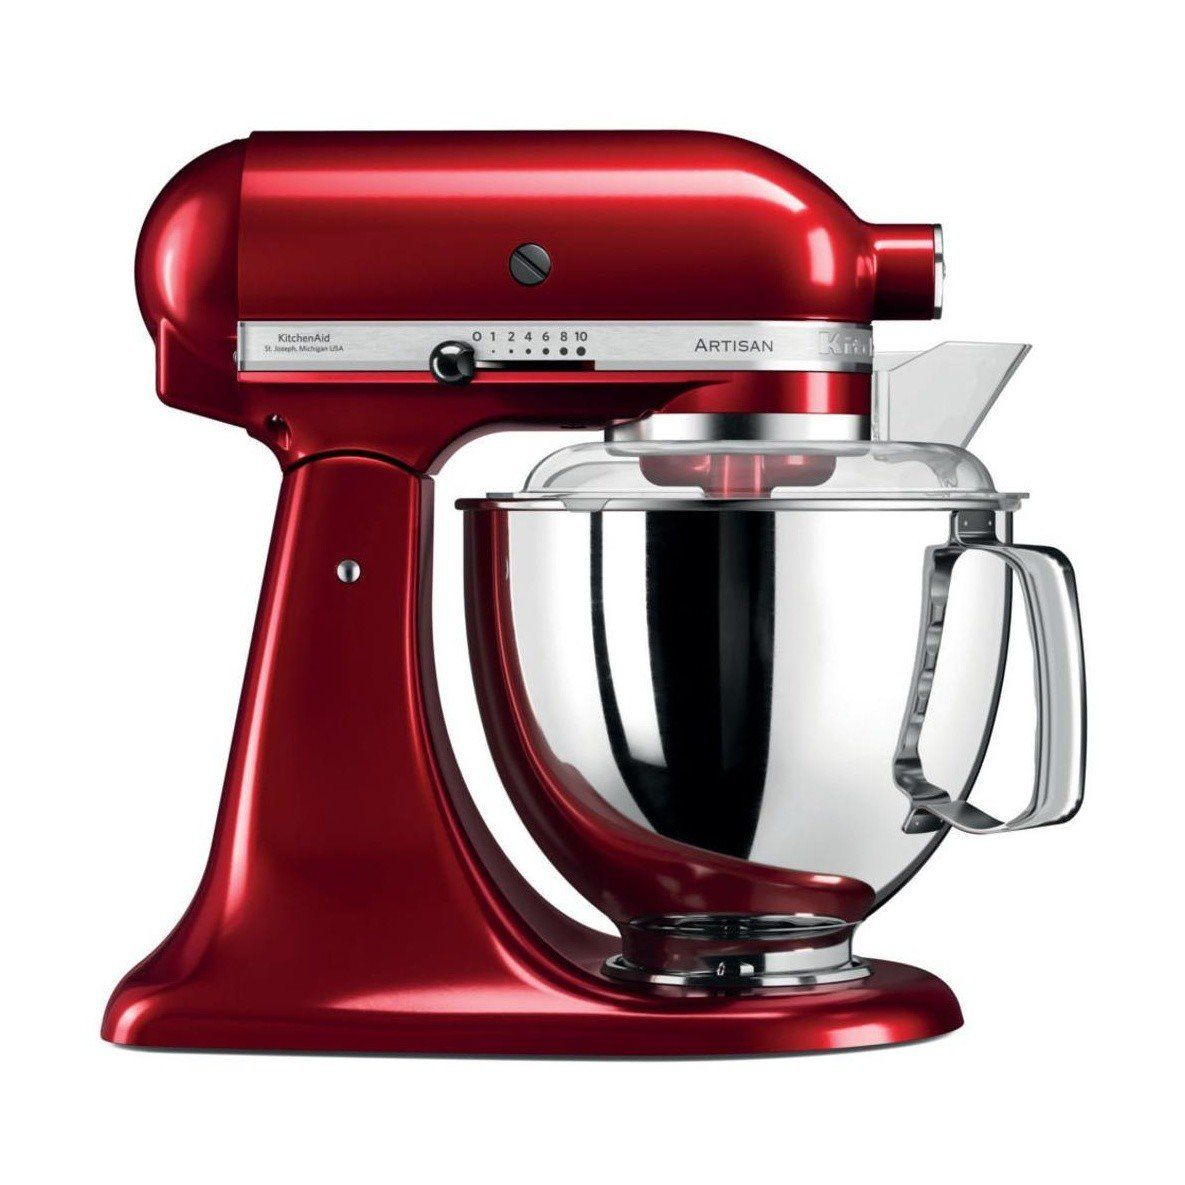 full aid dining kitchen cup size apple dp com candy amazon processor red kitchenaid processors line food pro